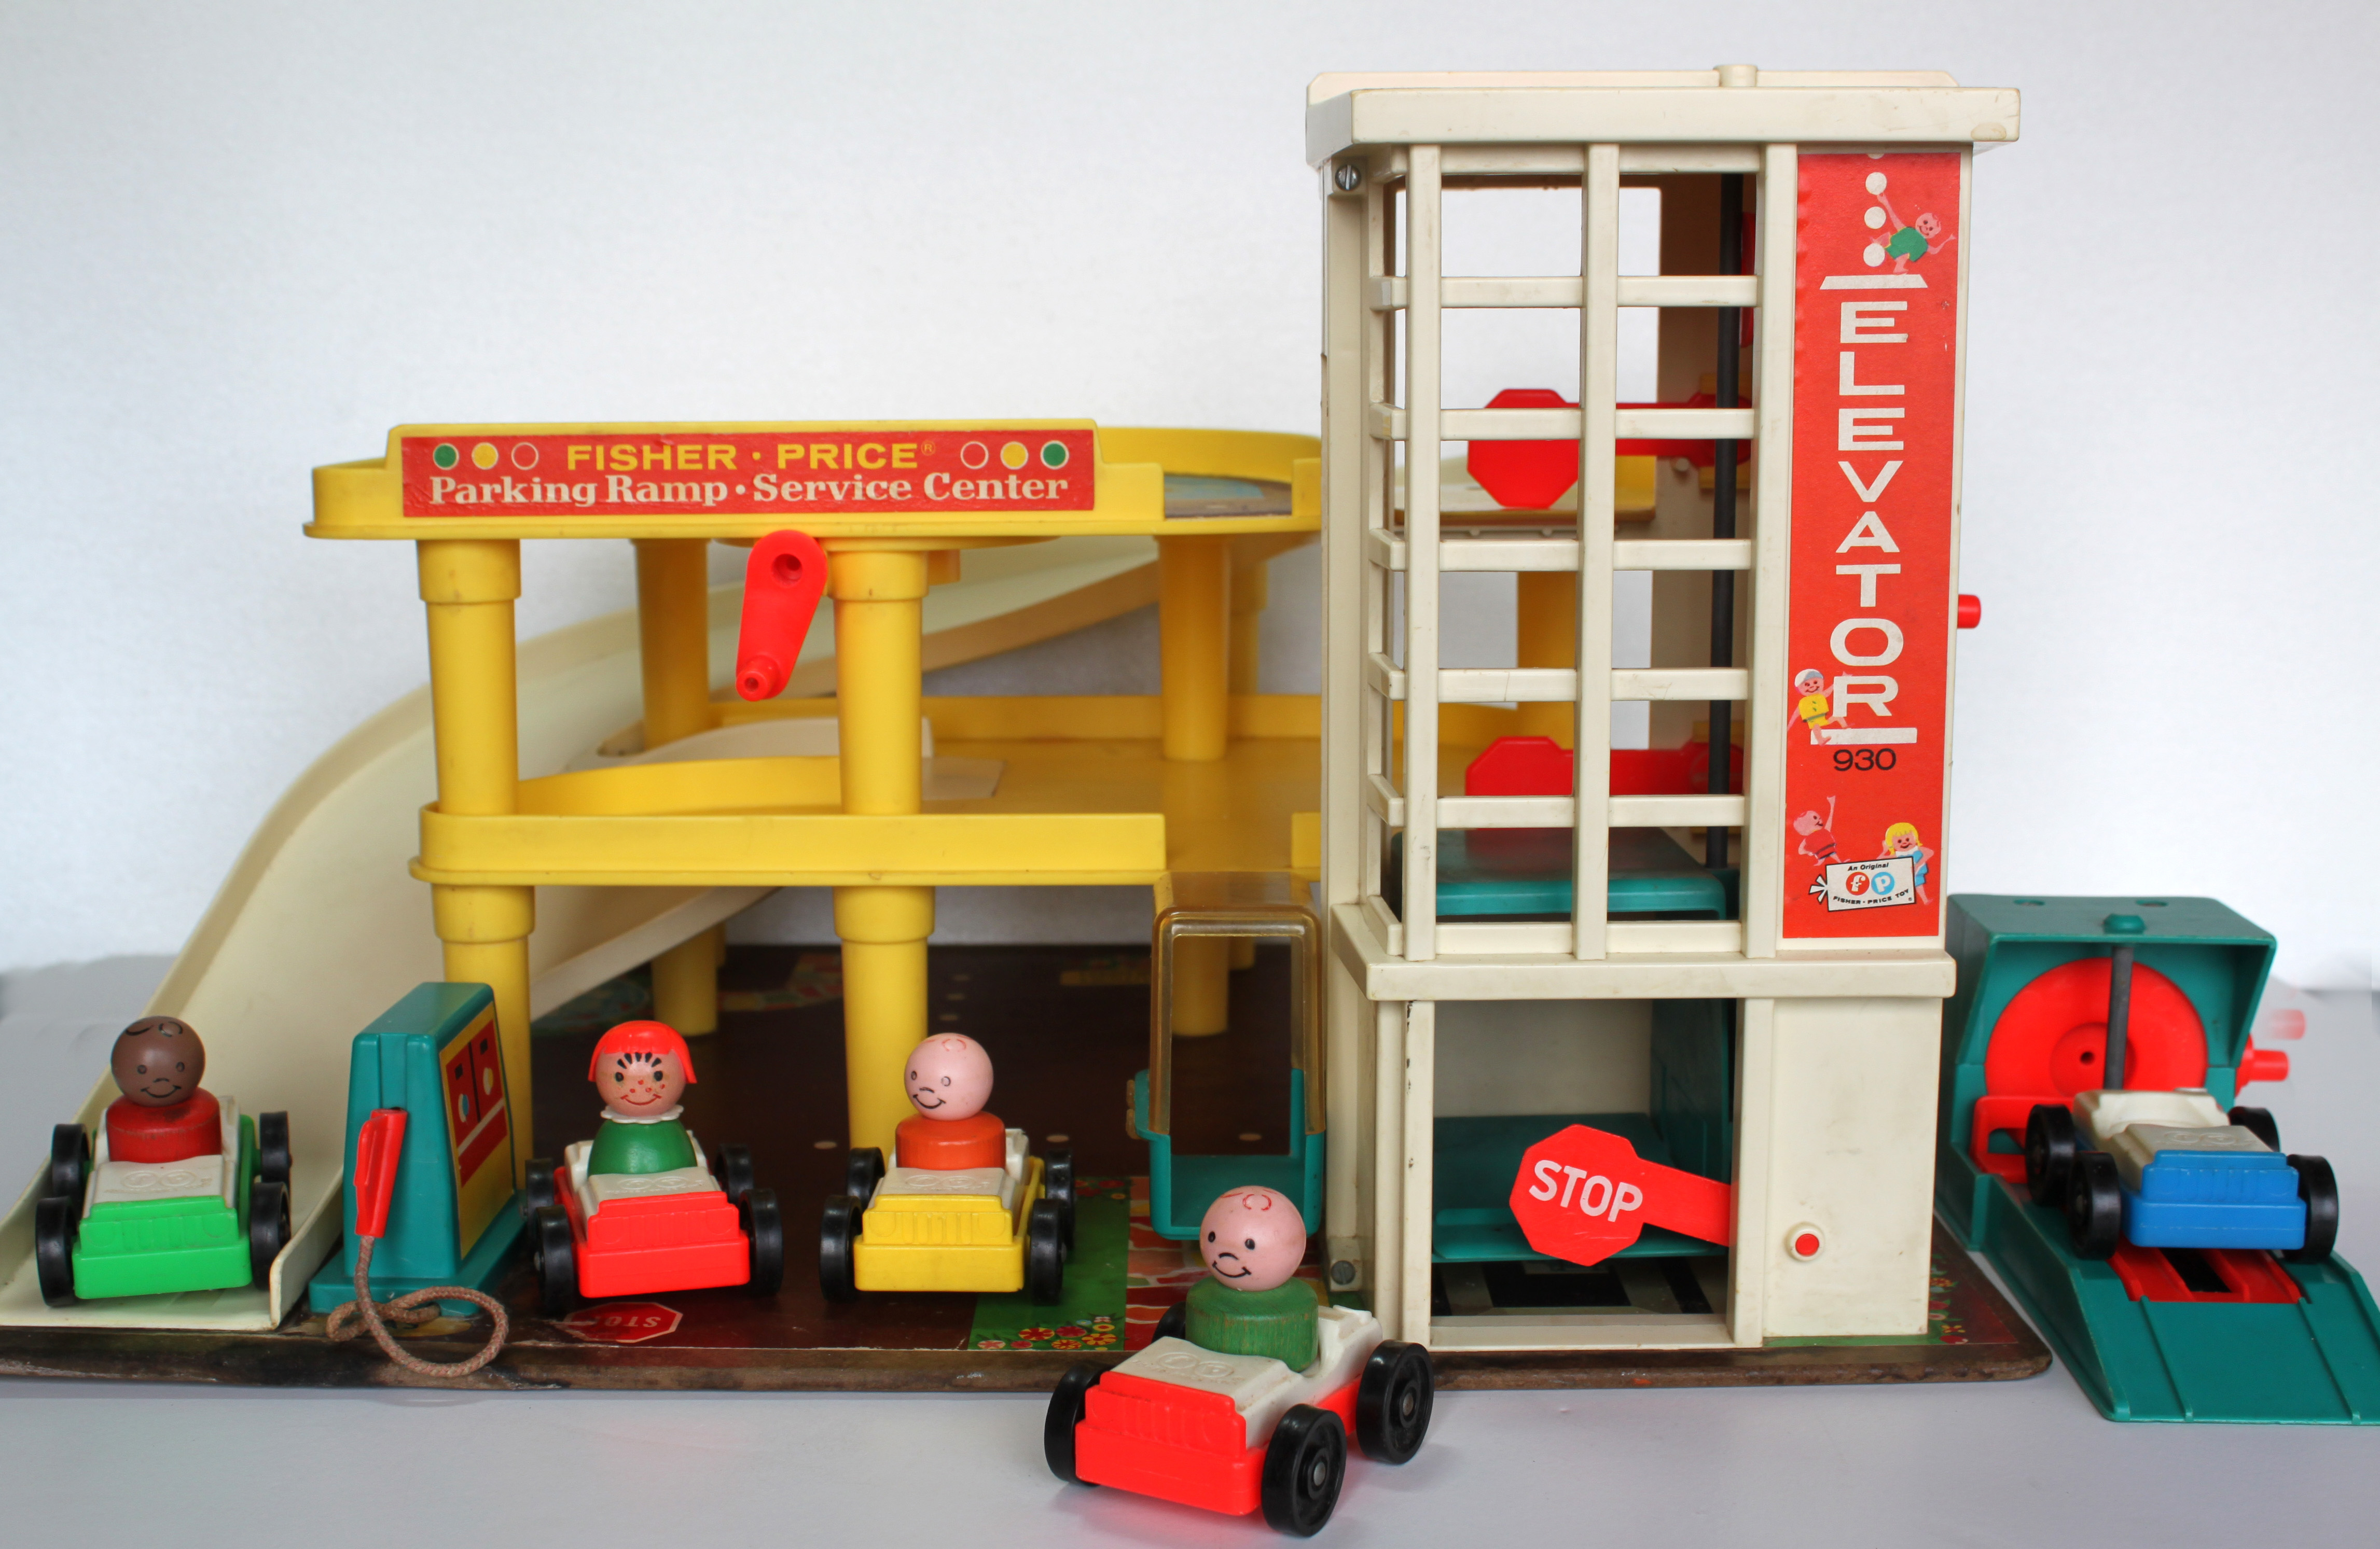 Vintage toy gas station